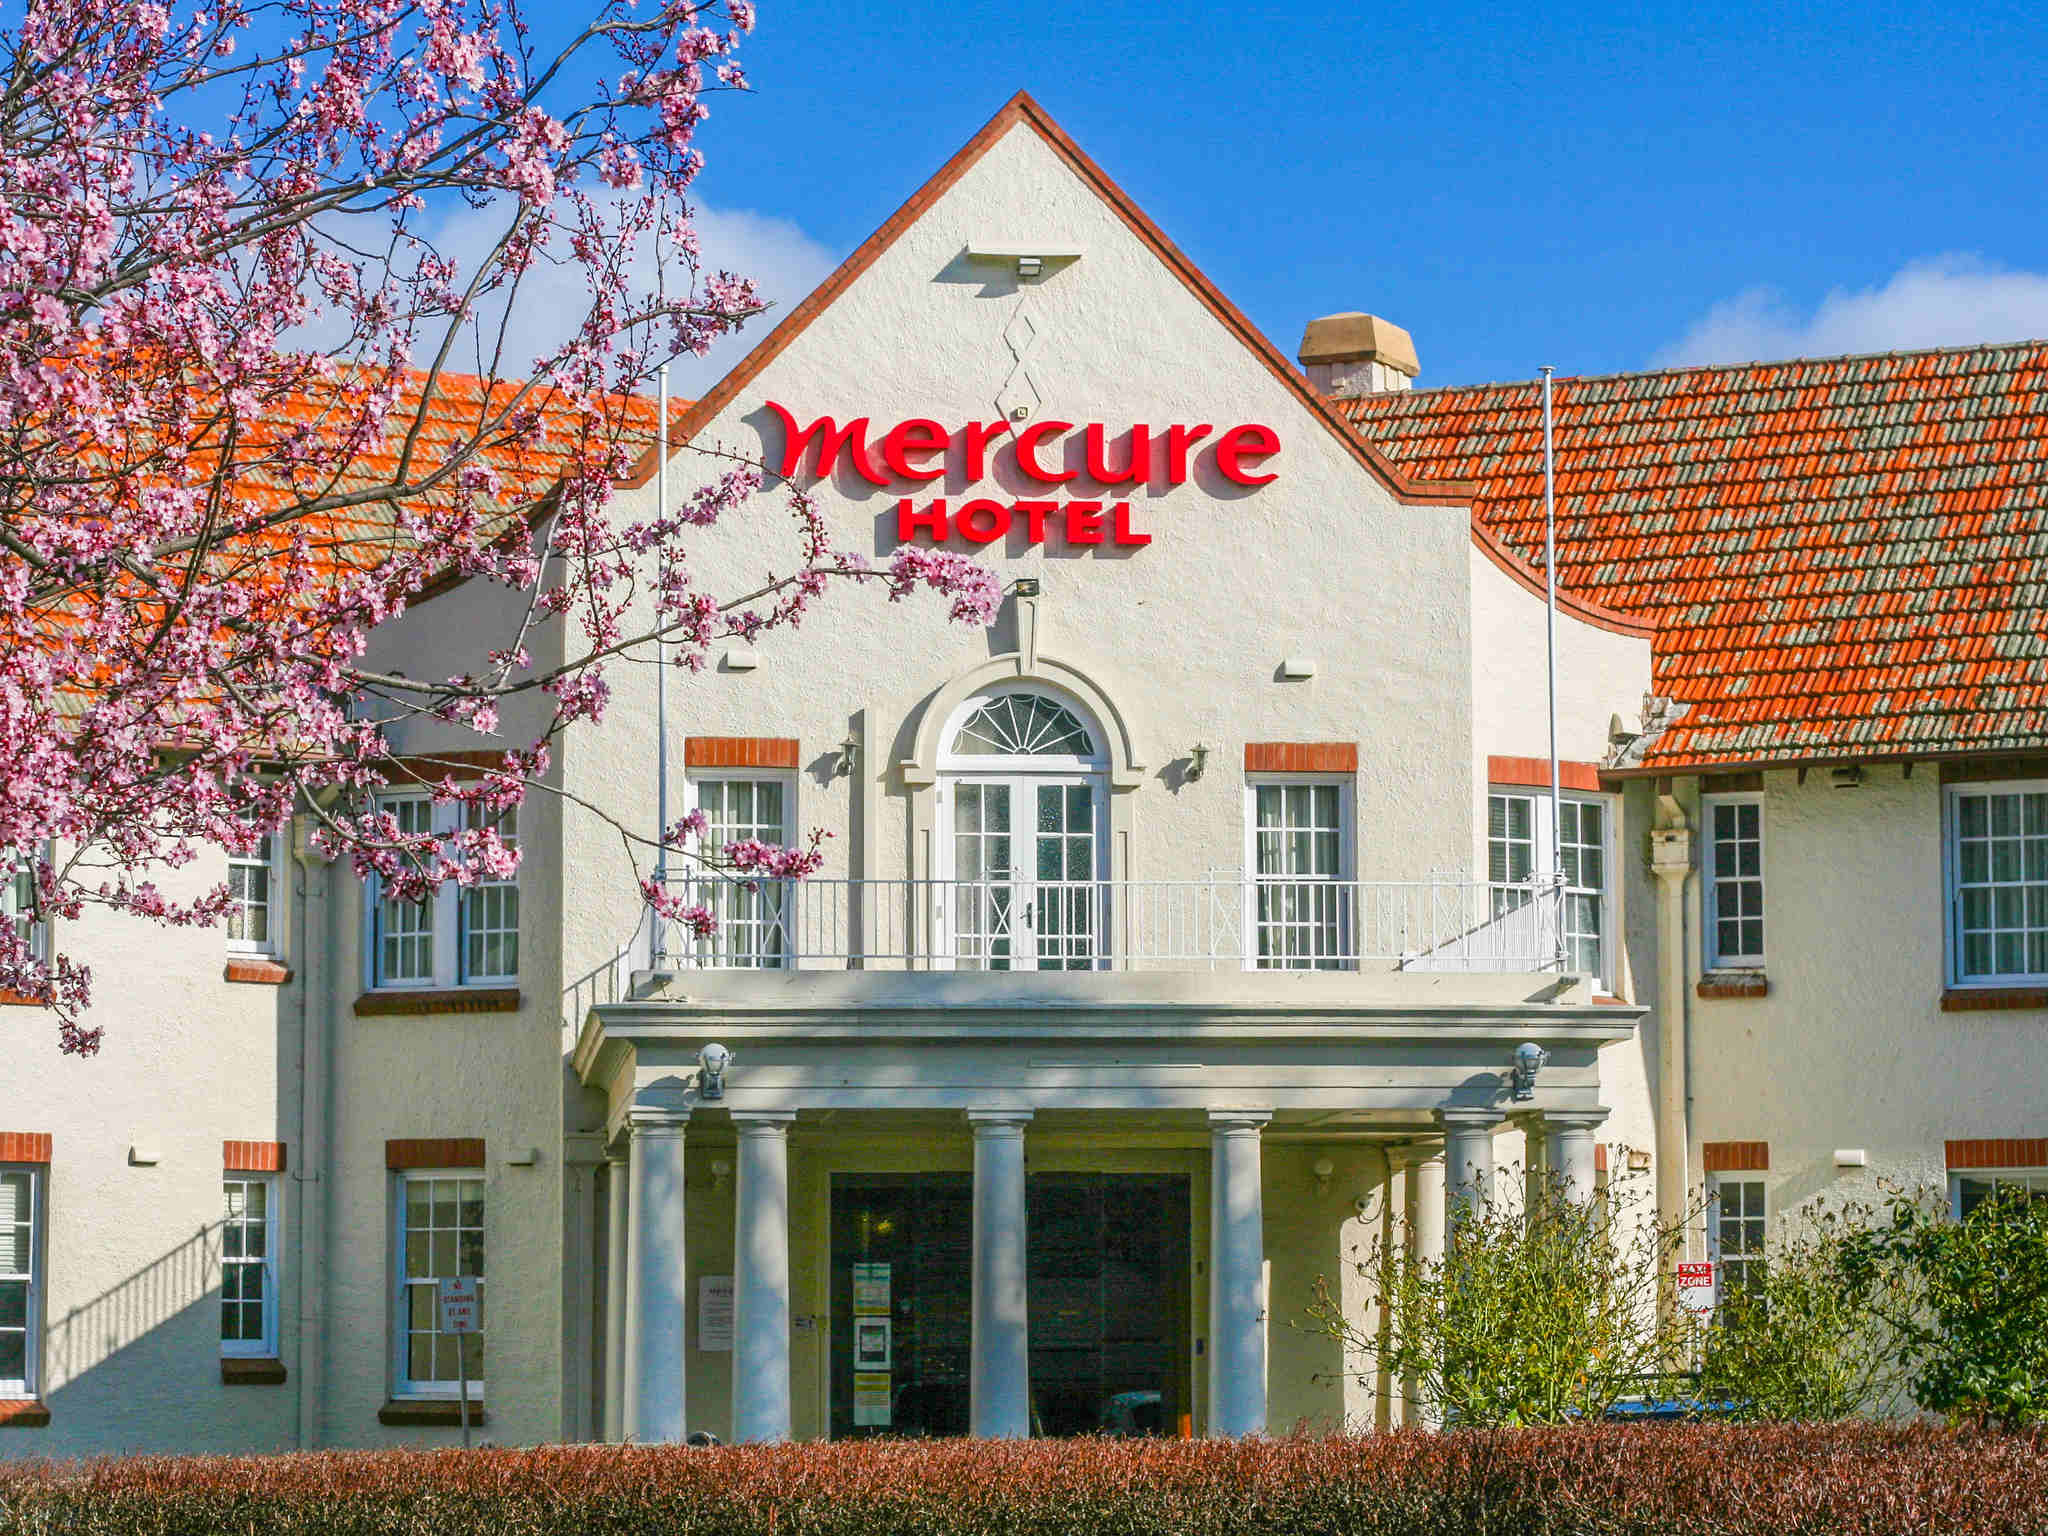 Mercure Canberra Accorhotels